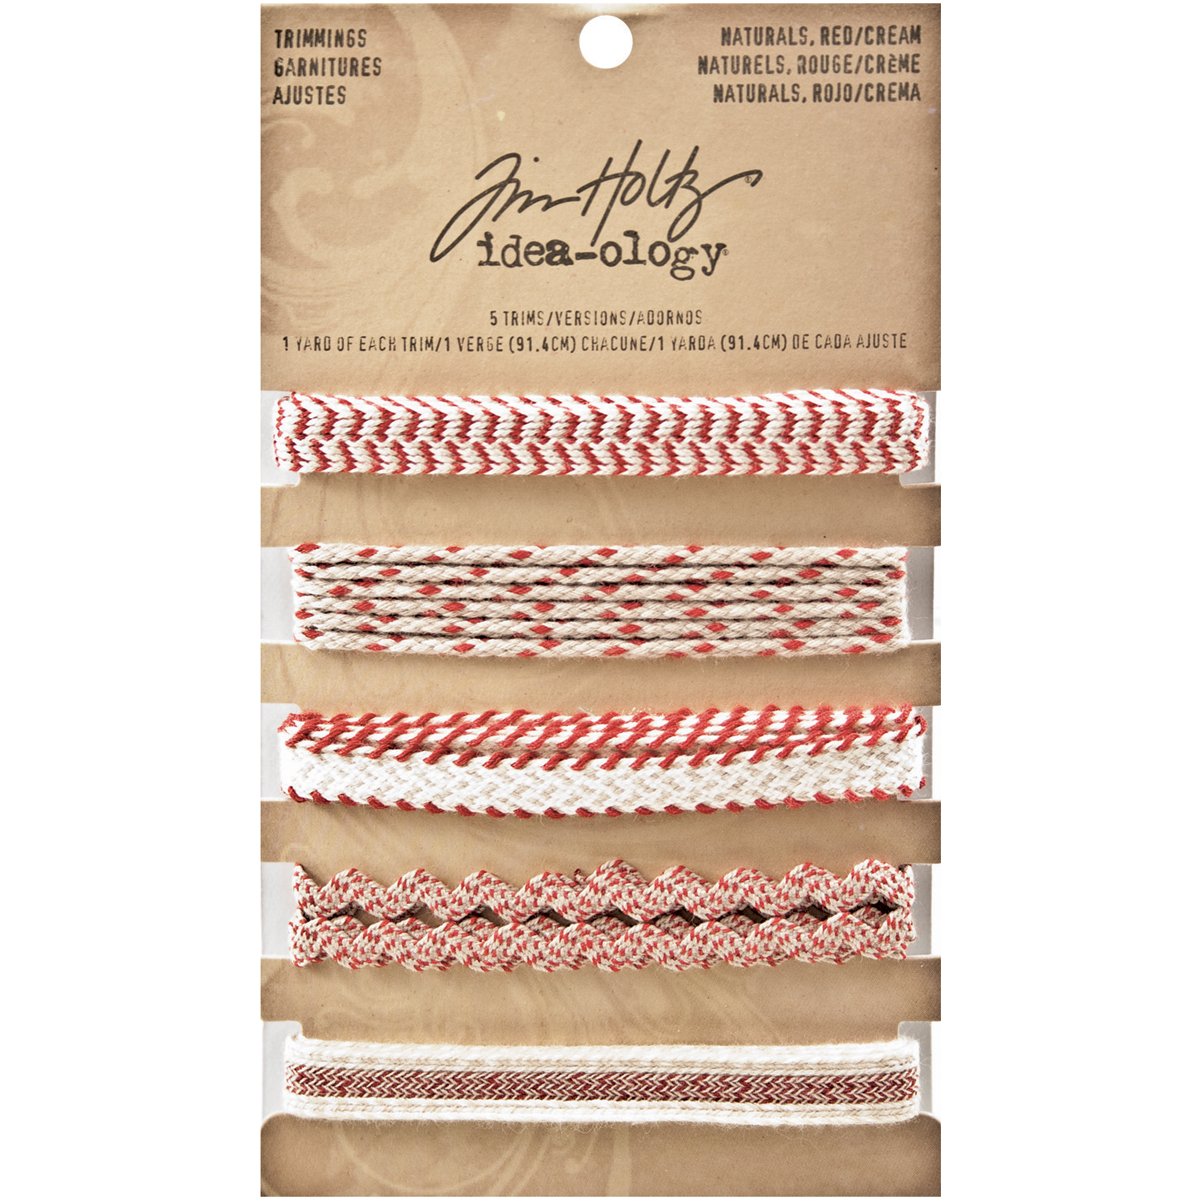 Idea-Ology Naturals Trimmings 5 Styles/1 Yard Each-Red/Cream